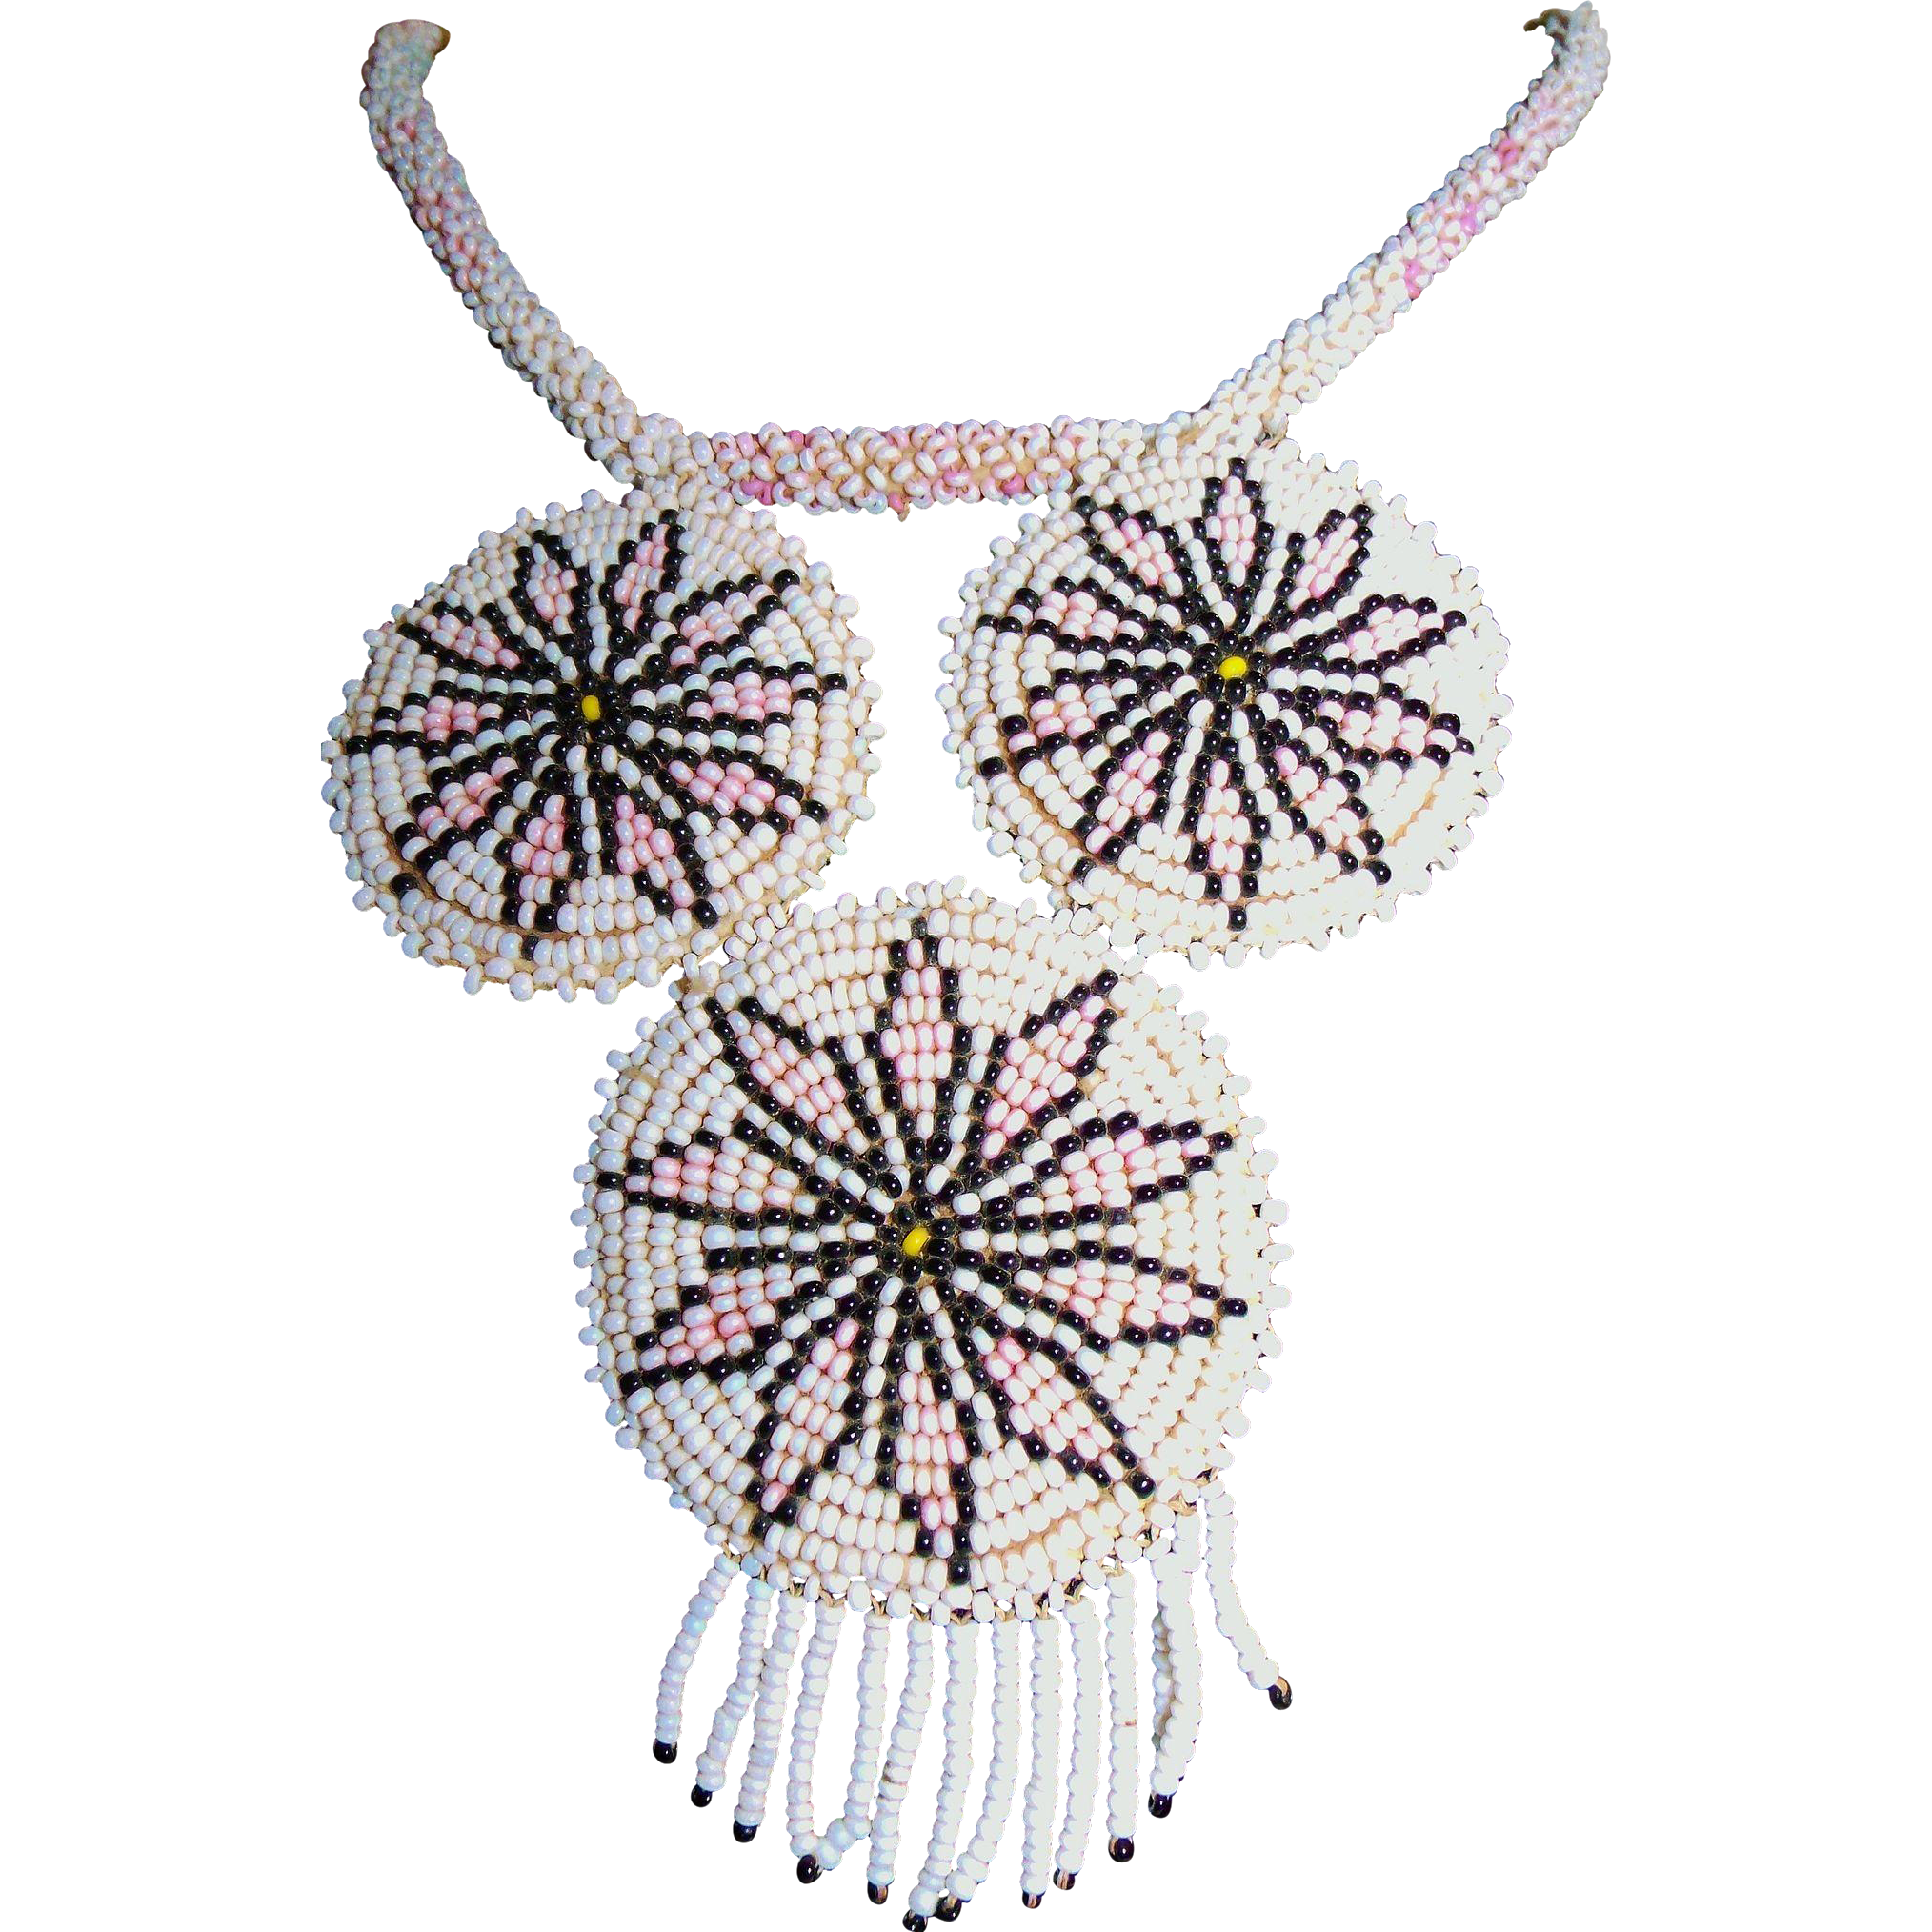 Southwestern Native Glass Seed Bead Necklace Pink Black White w/ Buckskin